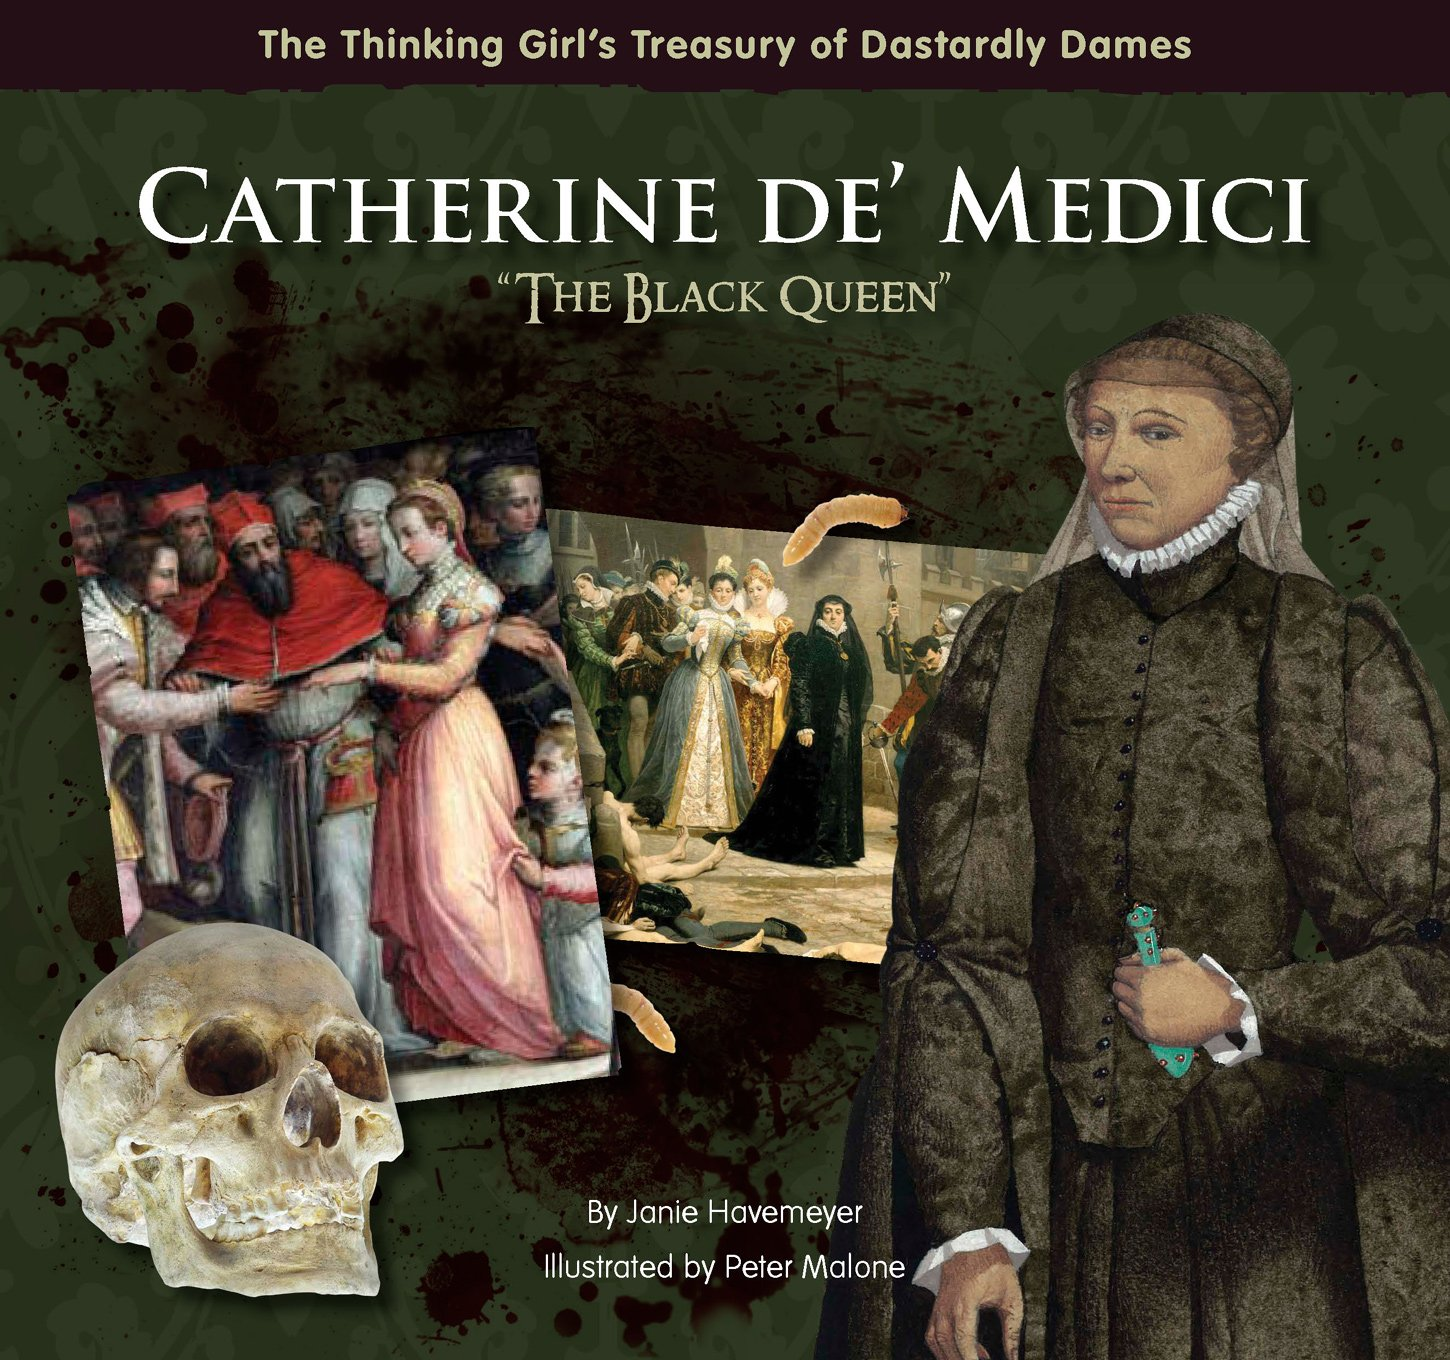 Catherine De' Medici 'The Black Queen'  The Thinking Girl's Treasury Of Dastardly Dames